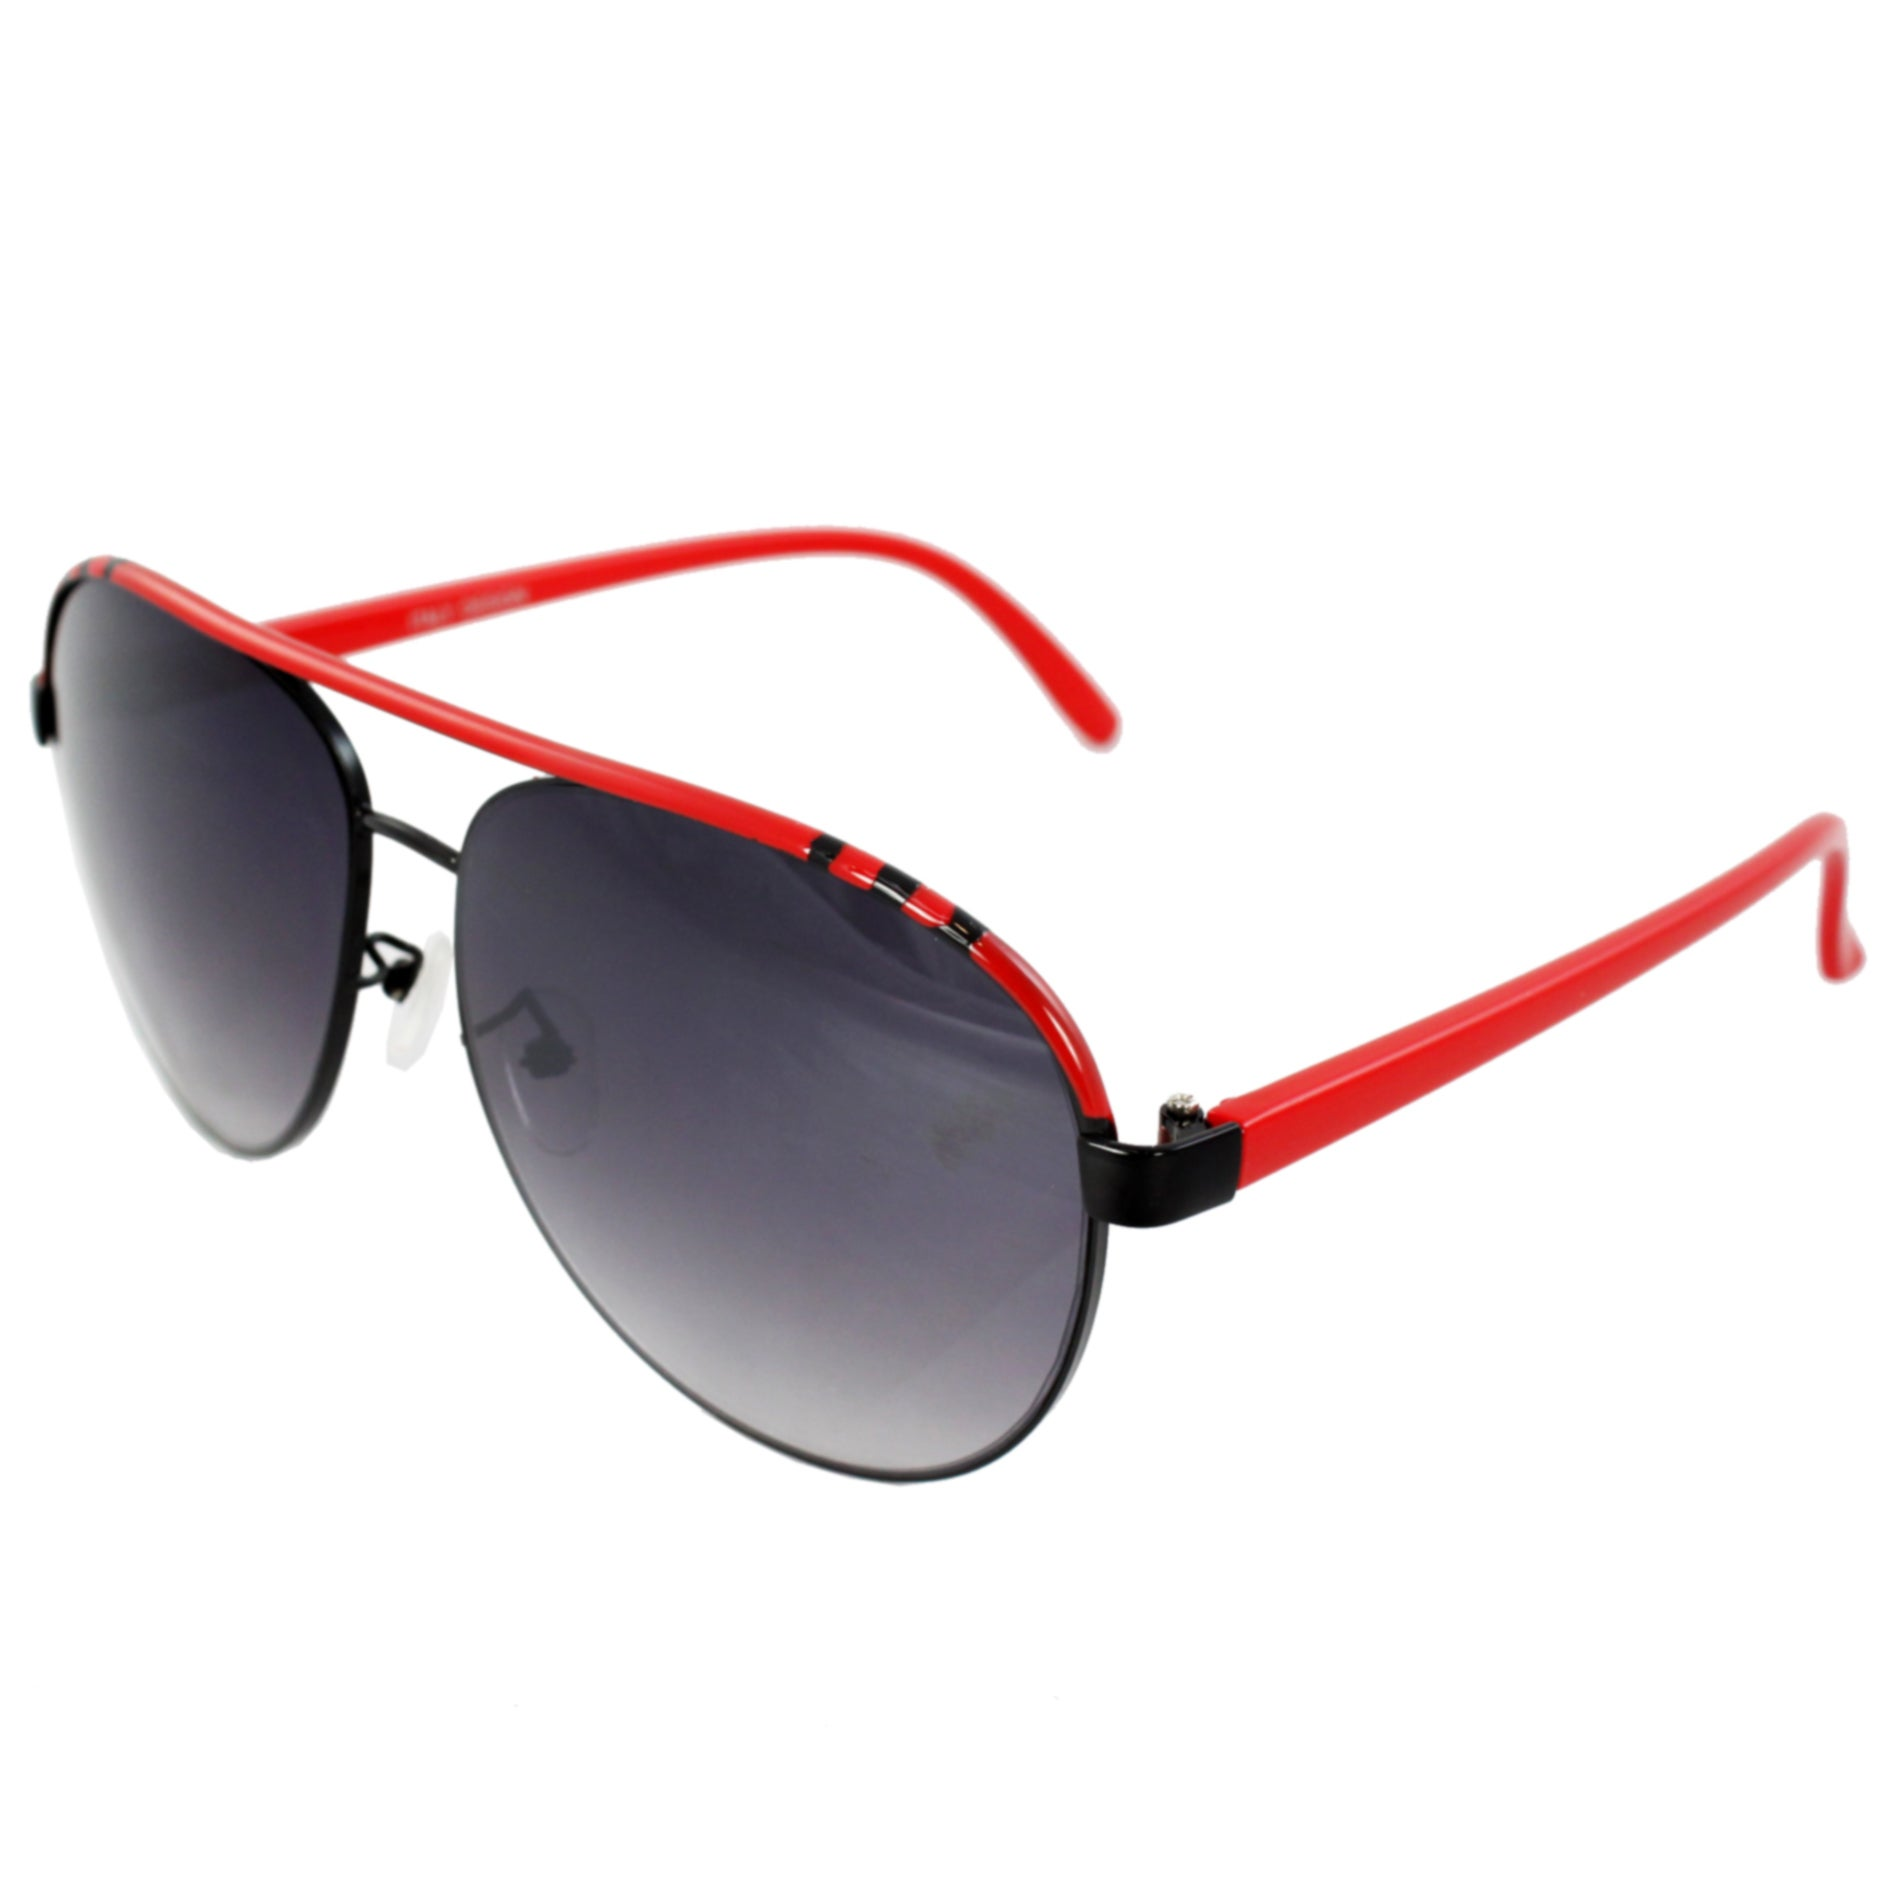 Pilot Aviator Fashion Sunglasses Red Frame Purple Black Lenses for Women and Men